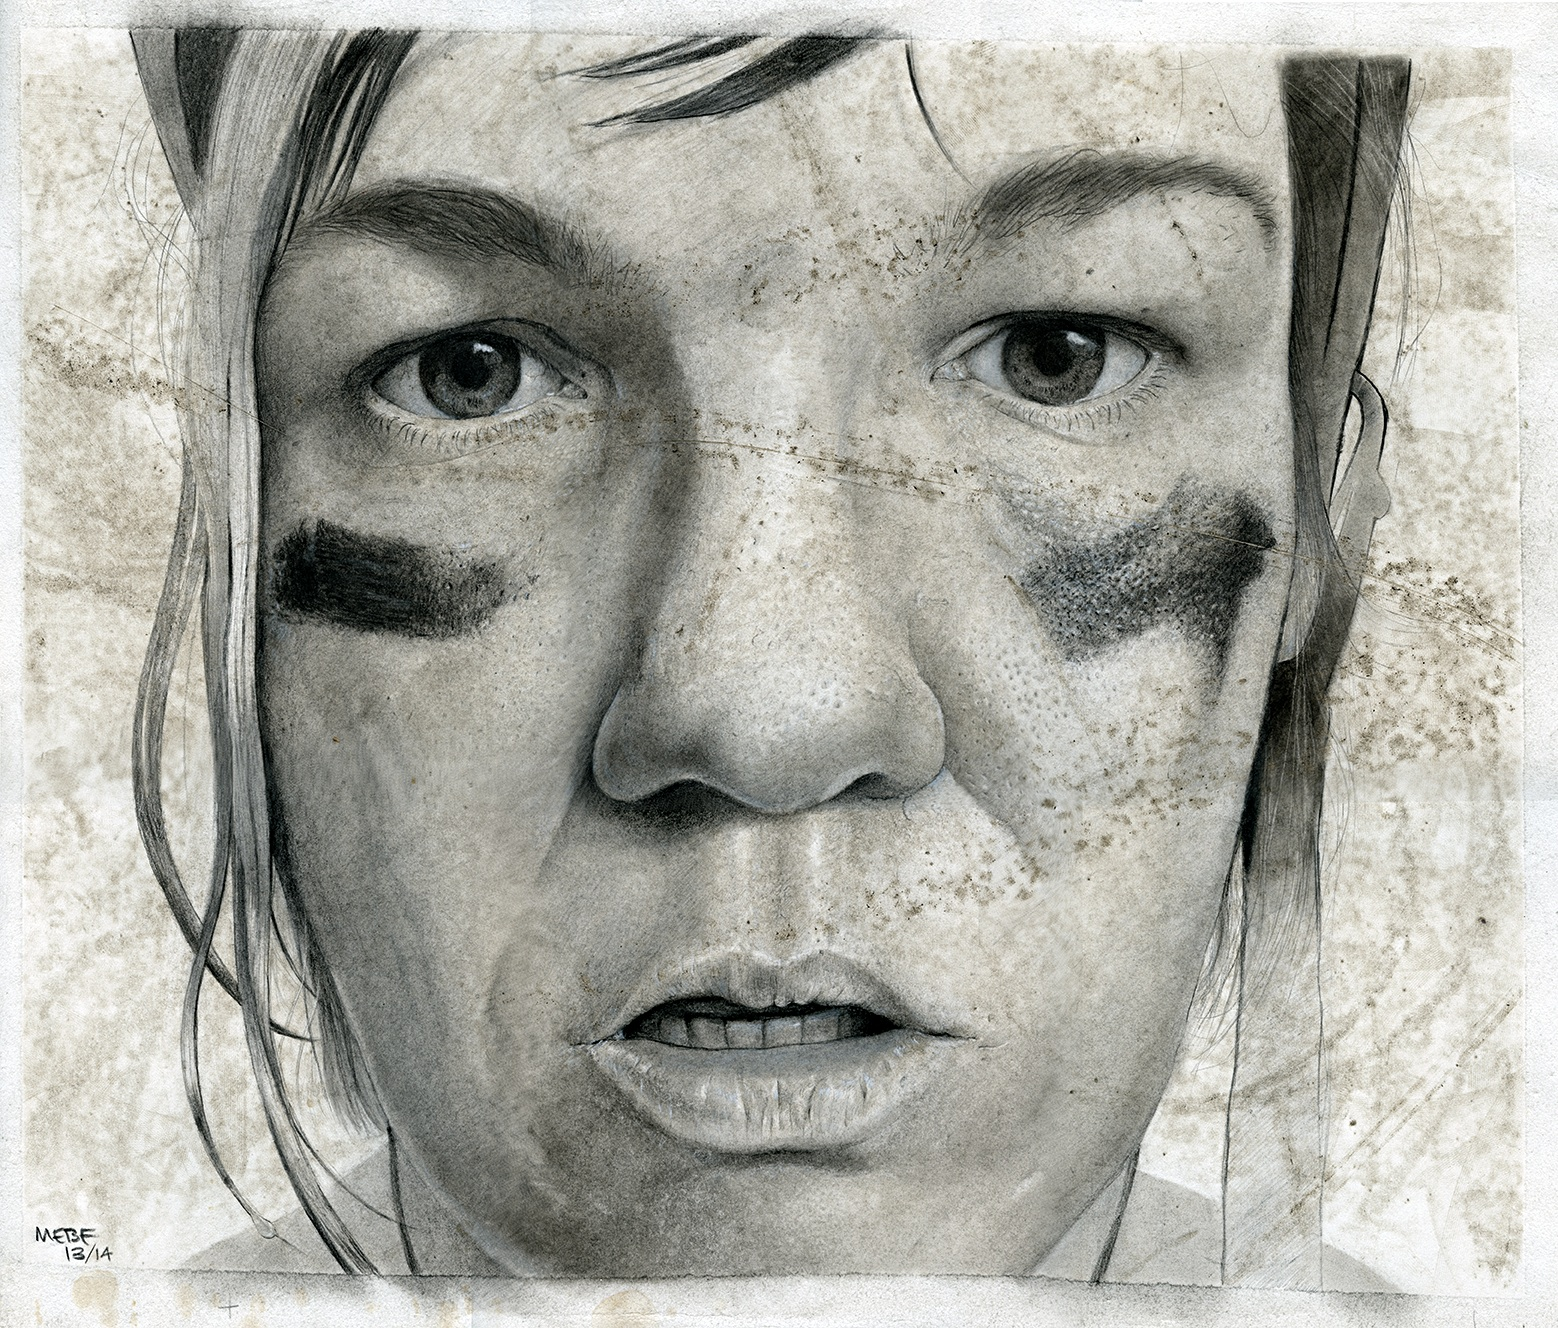 My roller derby self-portrait, 2014, carbon dust & roller skate dirt.